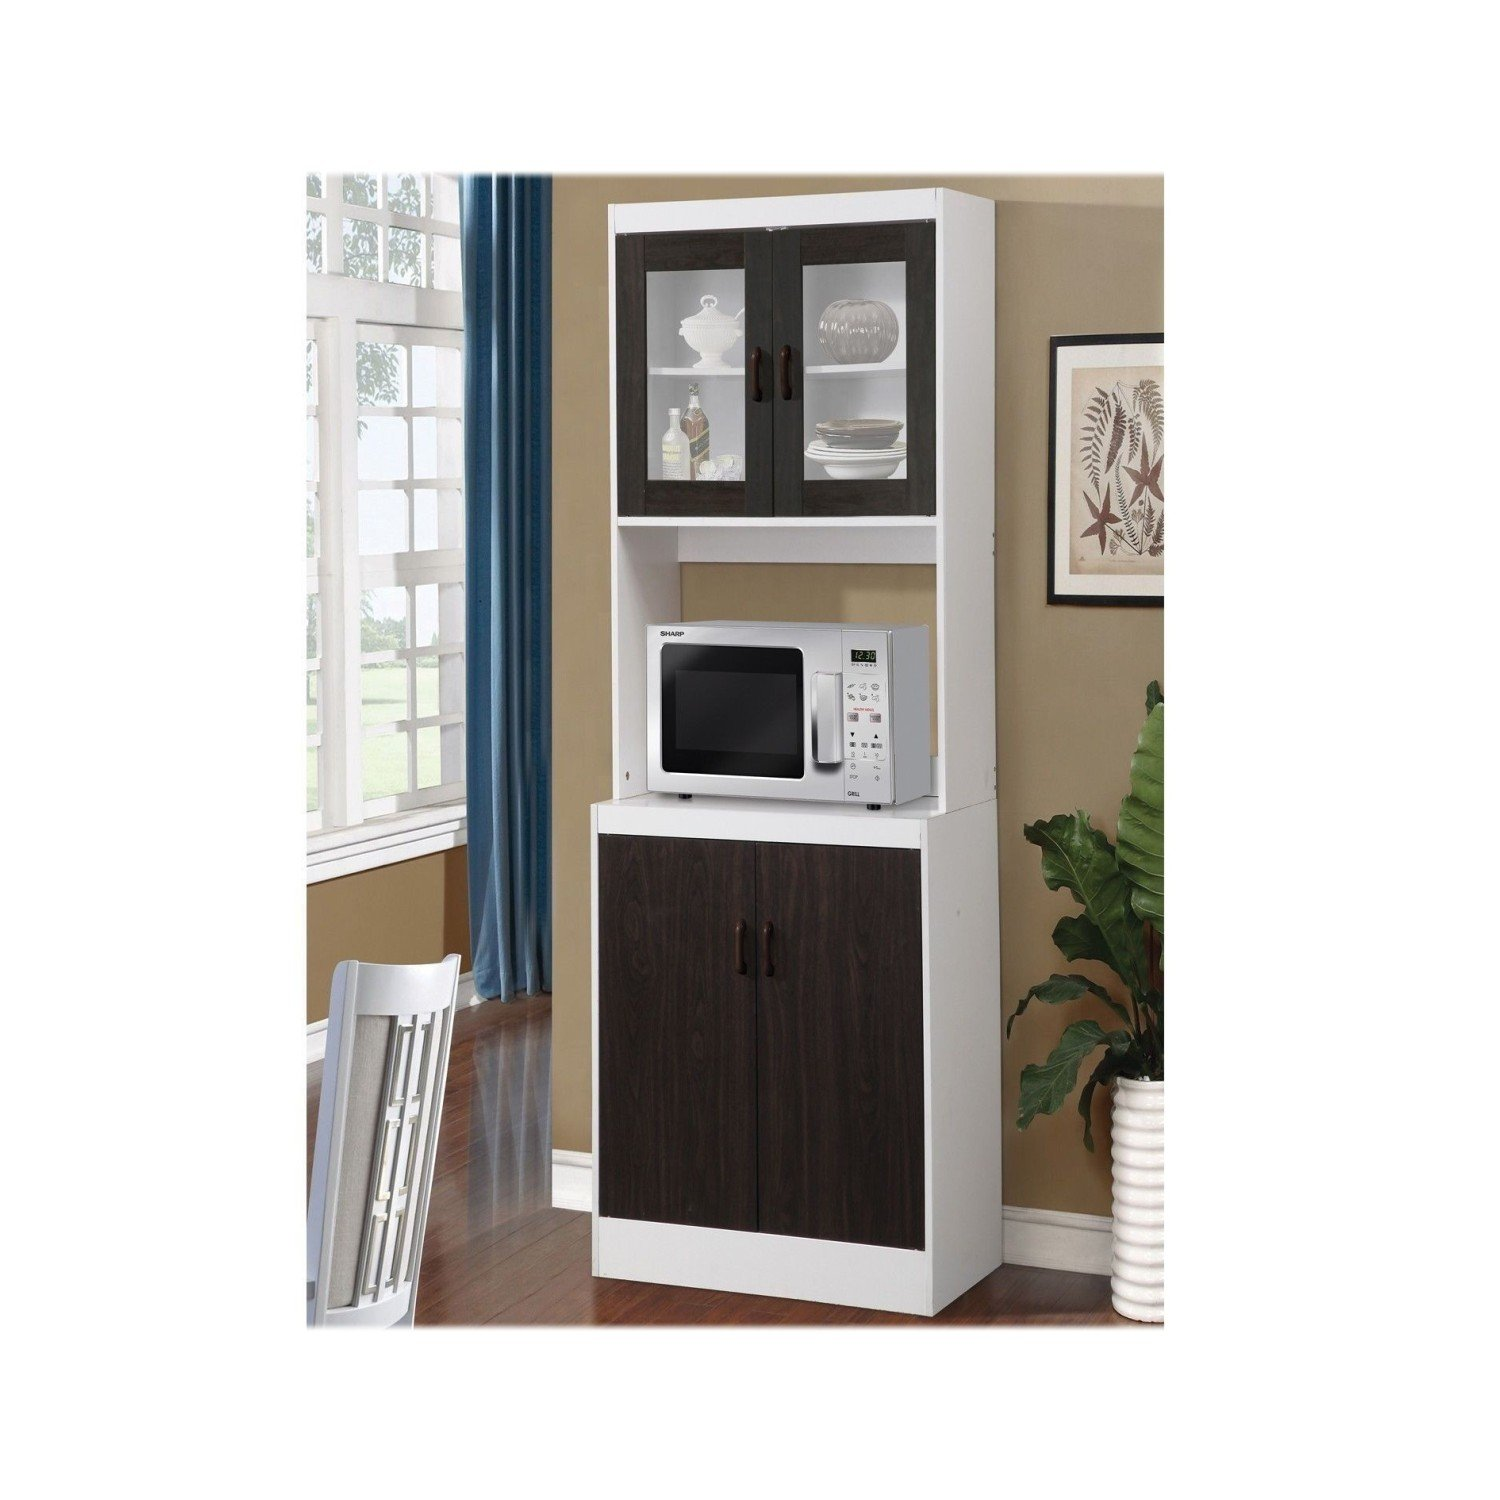 Get Quotations Usa Stock Tall Kitchen Microwave Stand Utility Cabinet Storage Shelves Cupboard 3 Colors